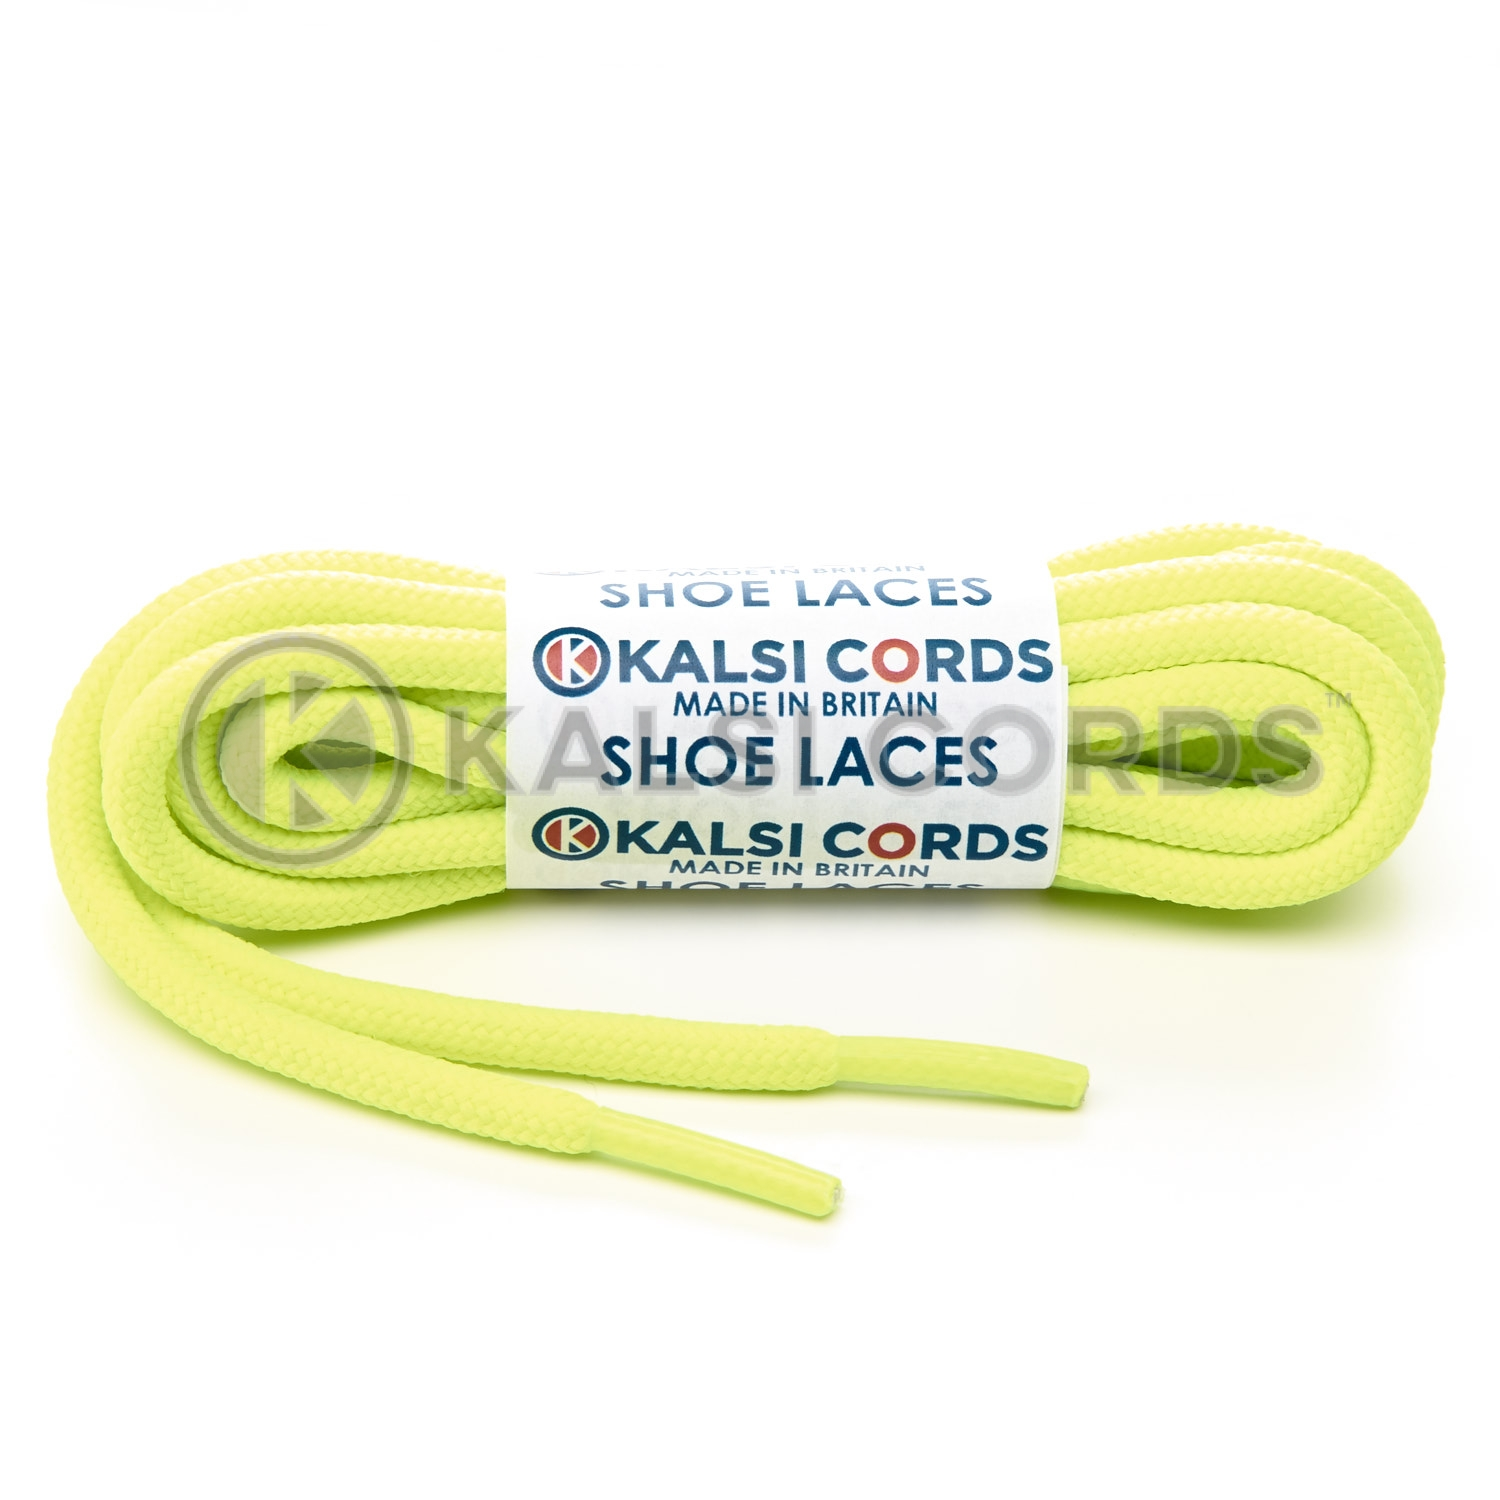 T621 5mm Round Cord Shoe Laces Fluorescent Neon Yellow PG053 Kids Trainers Adults Hiking Walking Boots Kalsi Cords